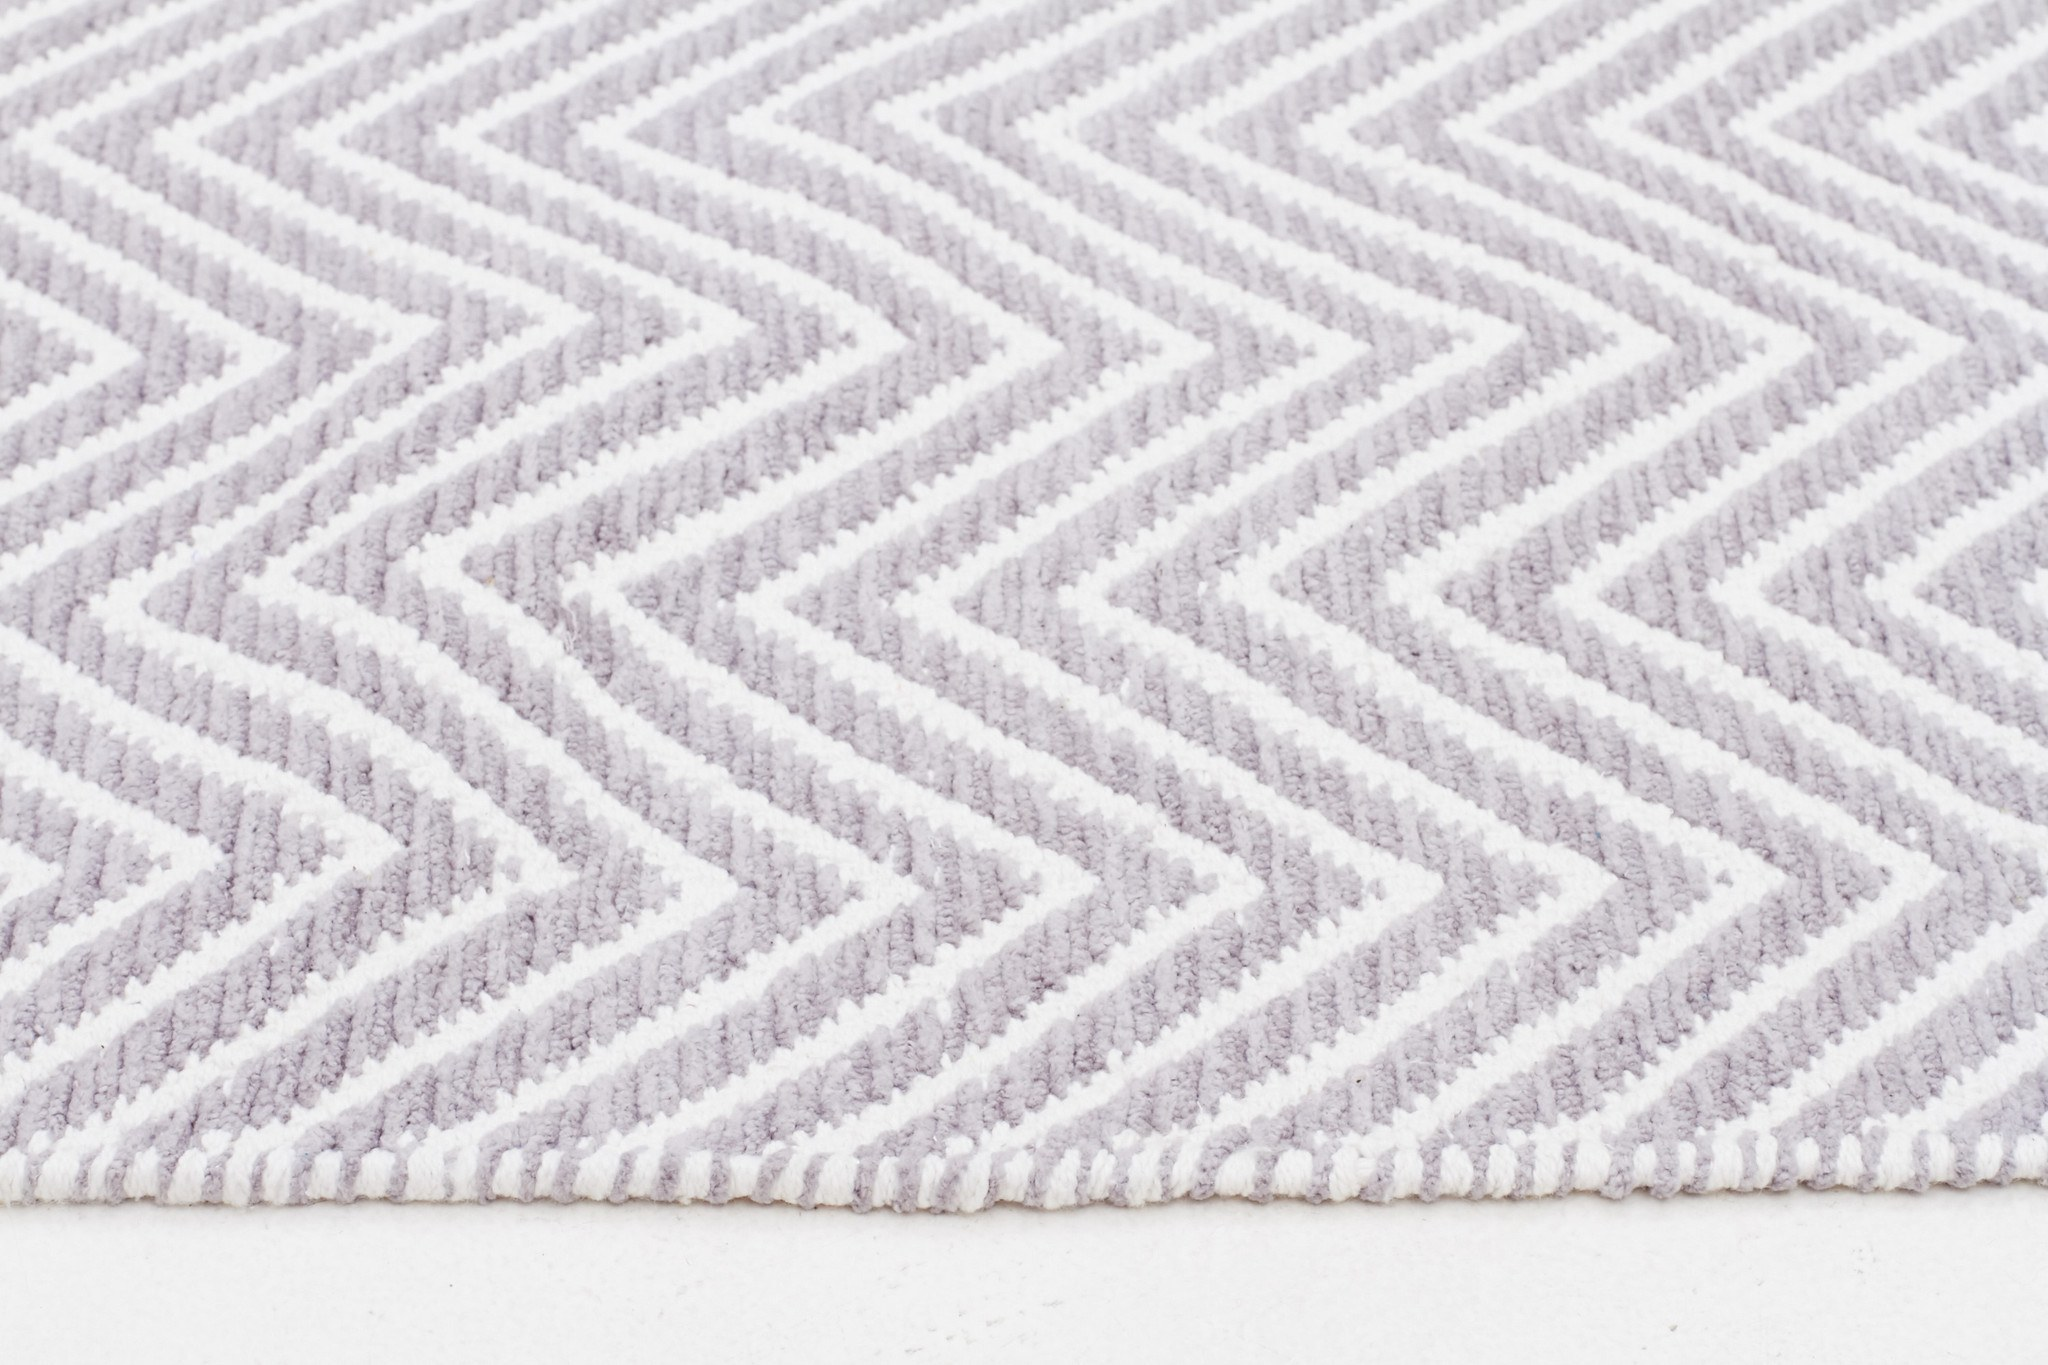 Chevron Rug Runner | Grey and White Chevron Rug 5x8 | Chevron Rug